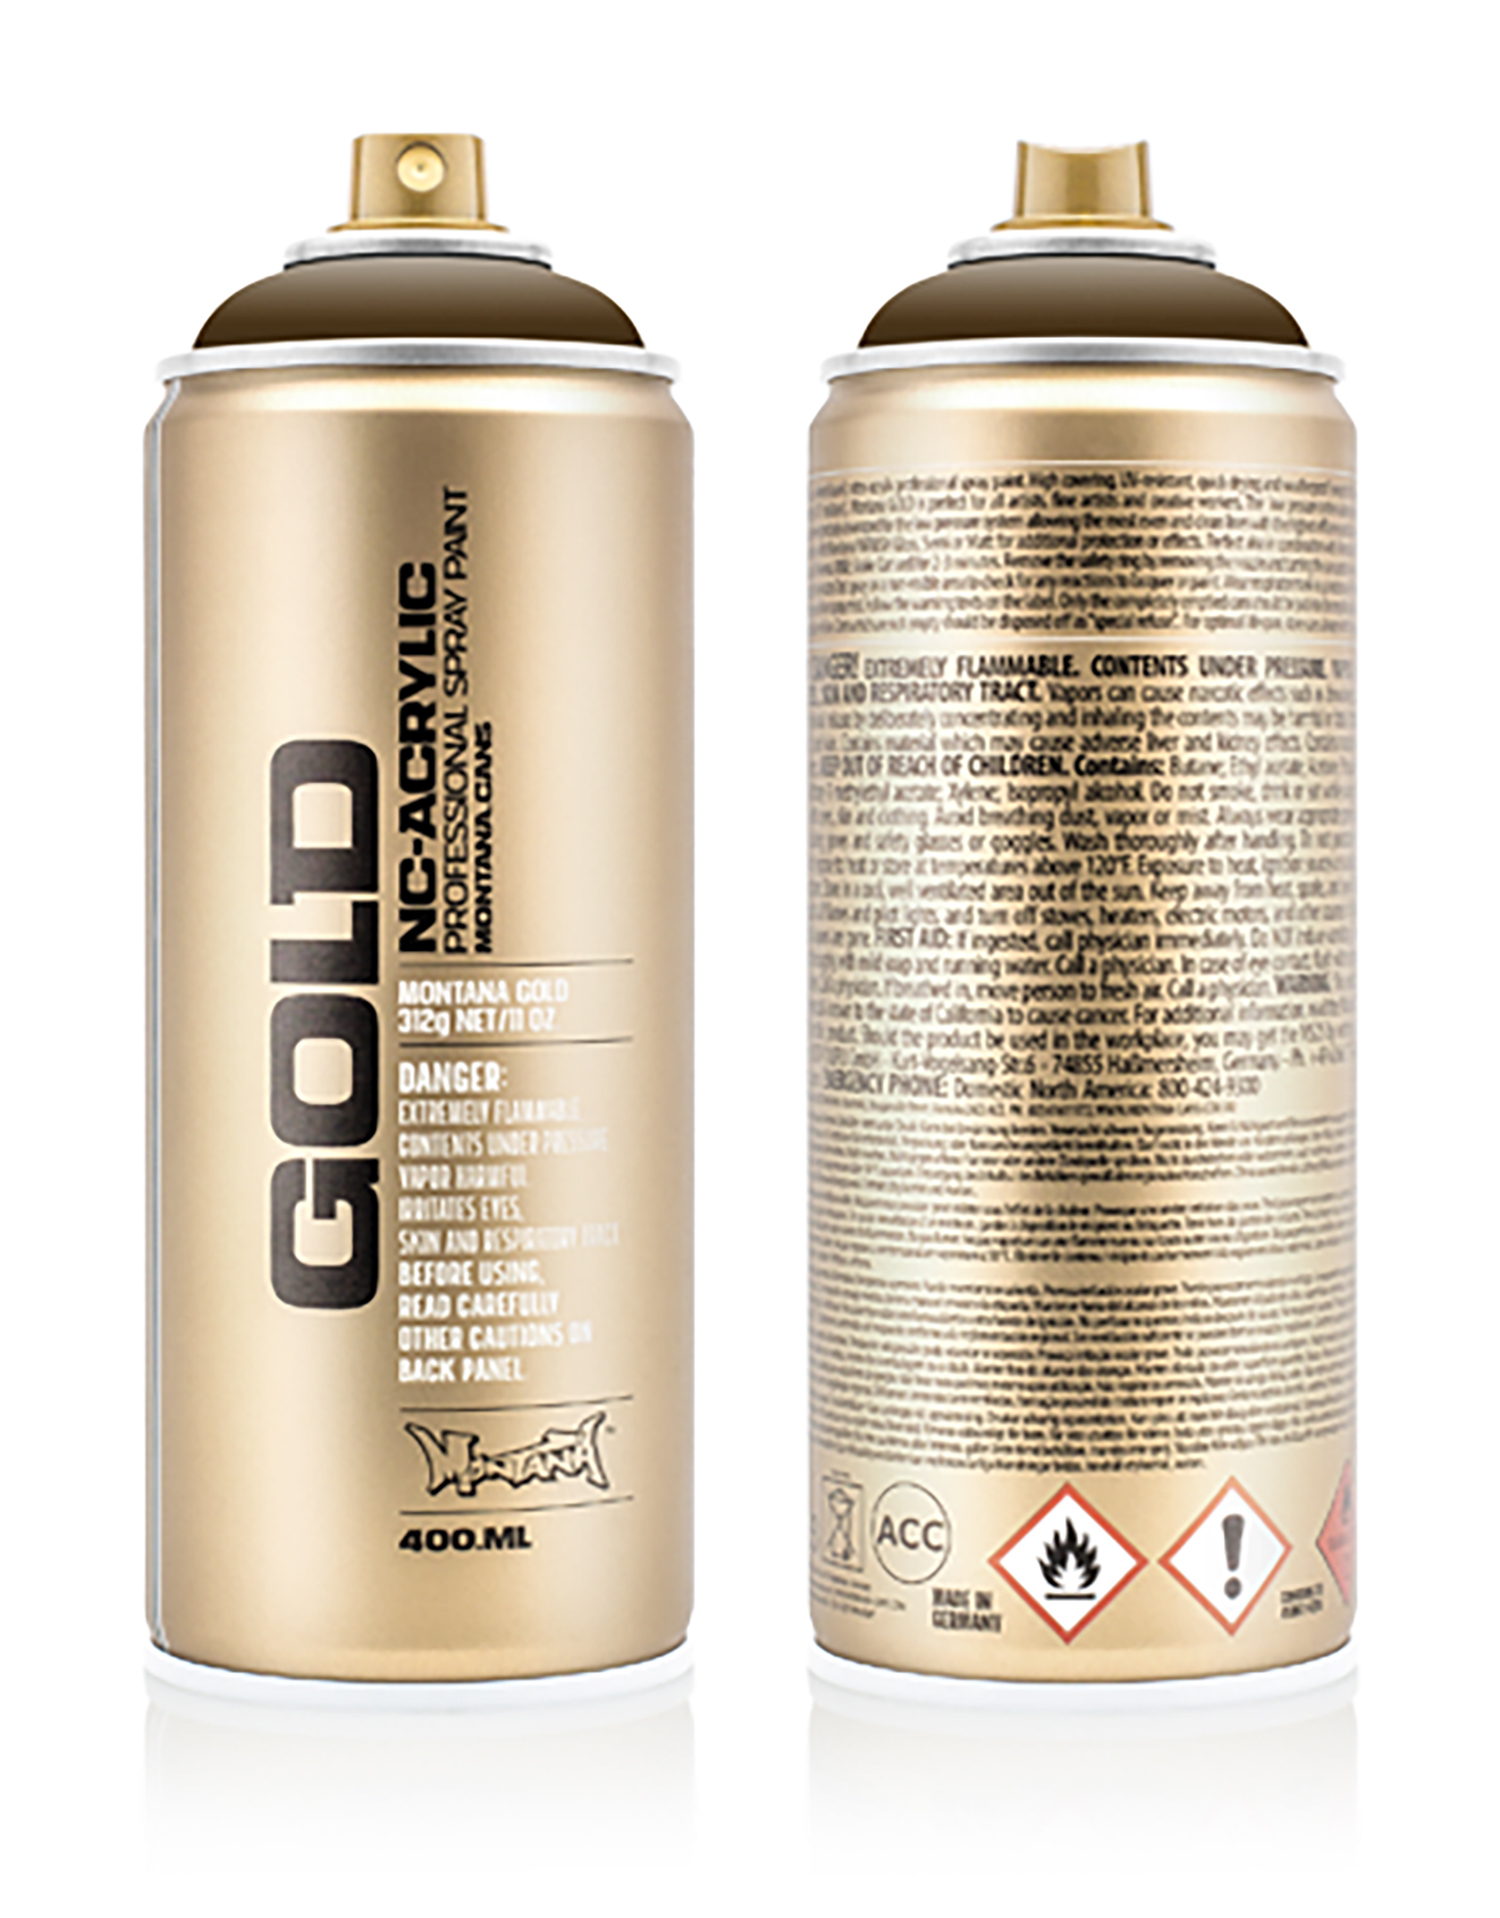 MONTANA-GOLD-SPRAY-400ML-G-1260